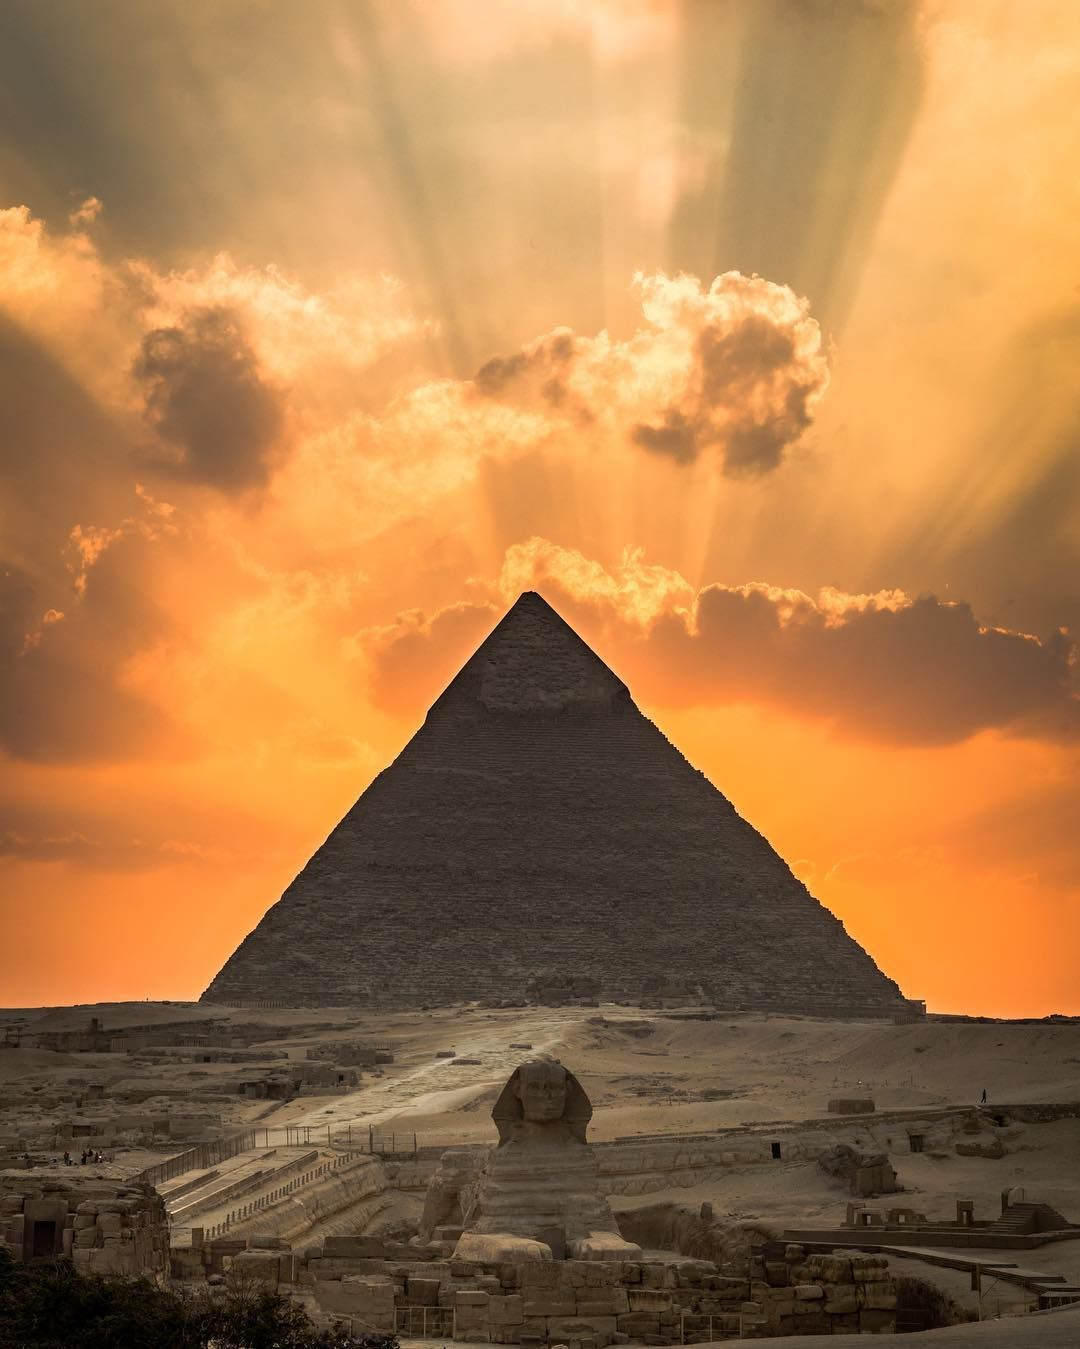 Sunset behind the Great Pyramid and Sphinx of Giza, Egypt